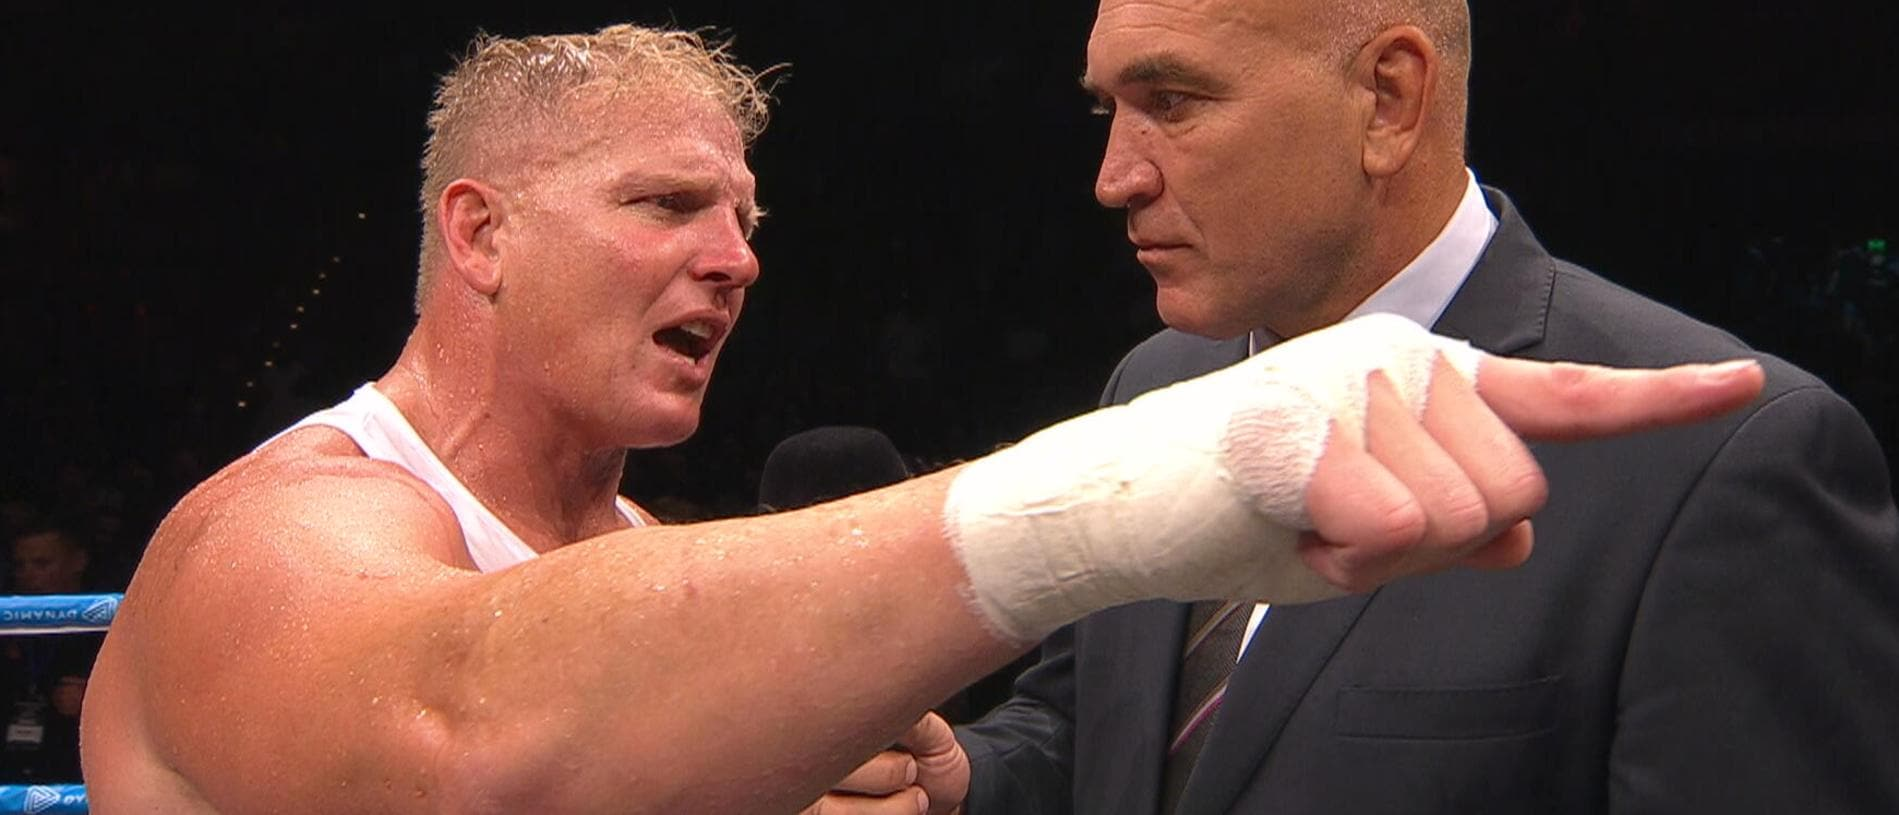 Ben Hannant was emotional after fighting Josh Papalii in Townsville.